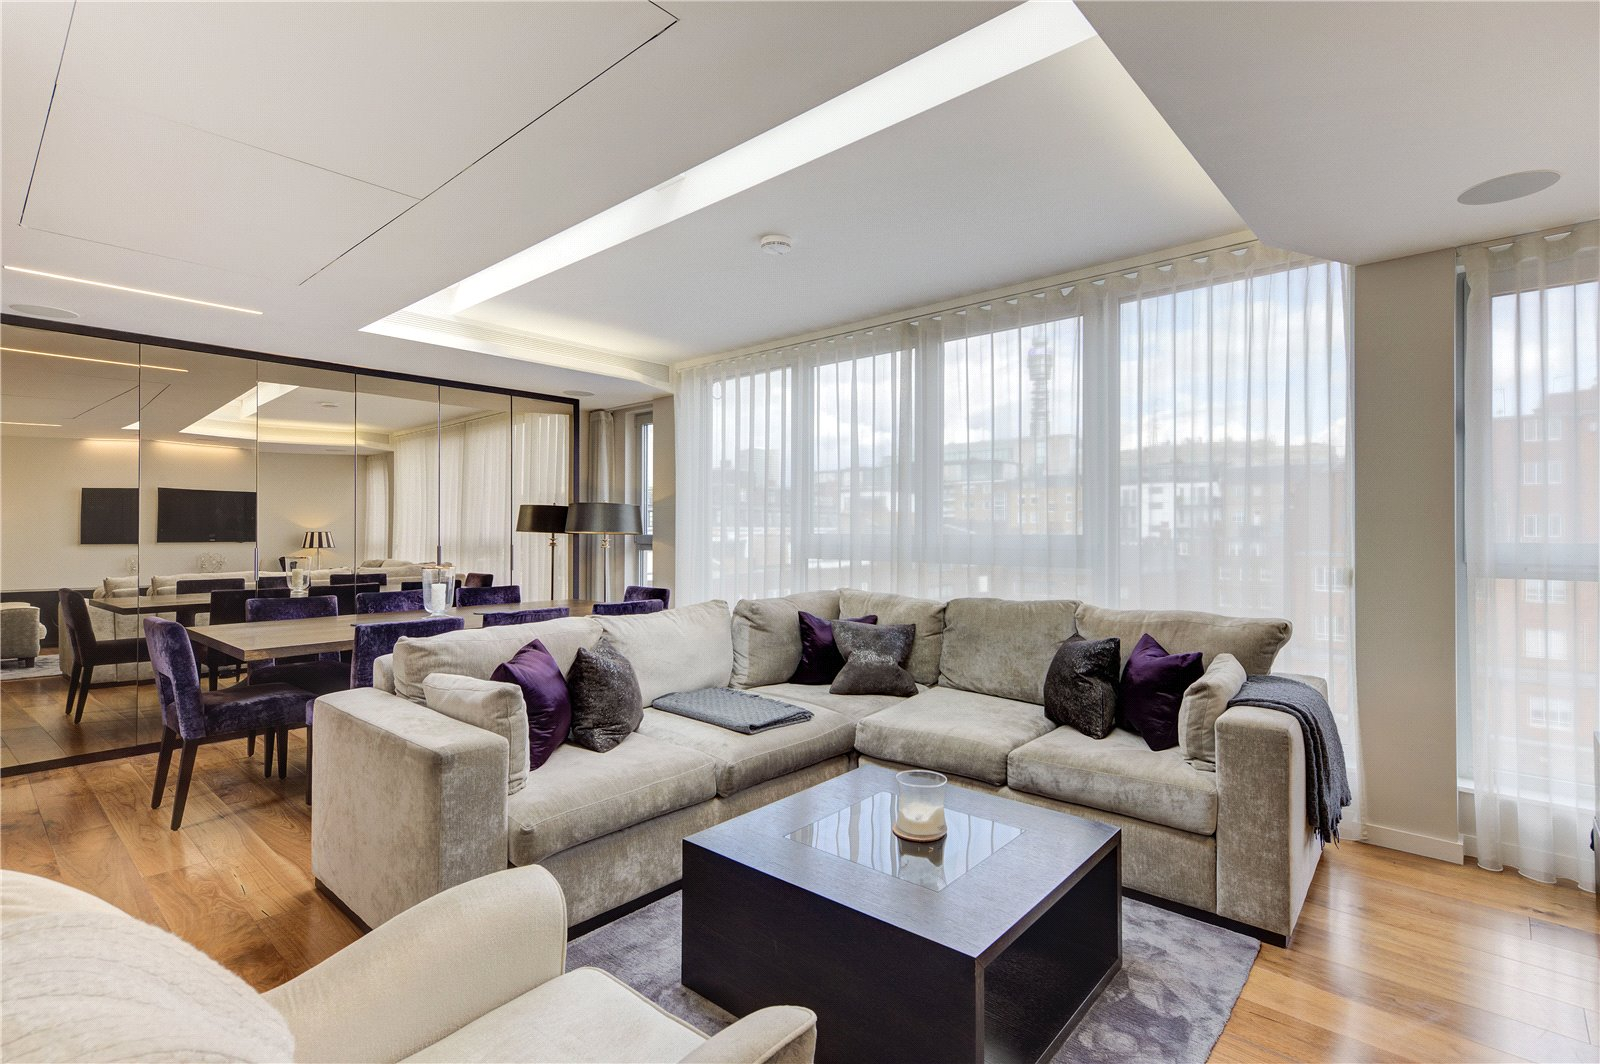 Apartment for Sale at Harmont House, Harley Street, Marylebone, London, W1G Harmont House, Harley Street, Marylebone, London, W1G